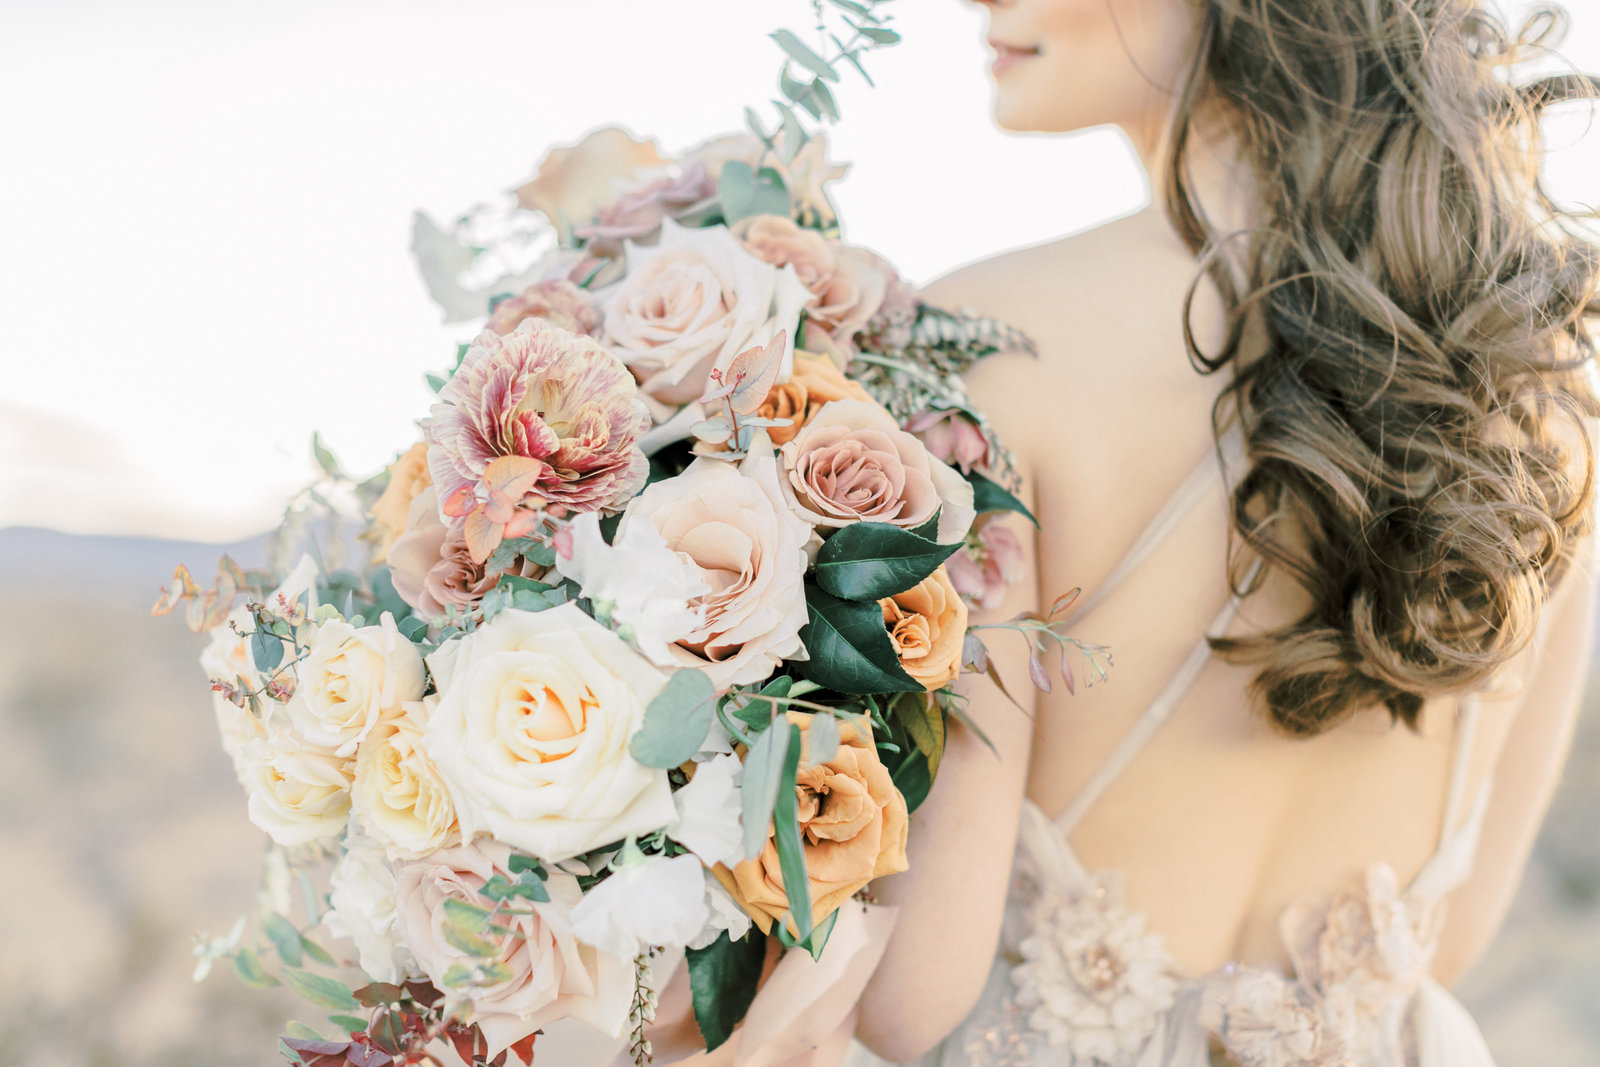 photo of a bride holding a bridal bouquet with ivory, peach and pink colors in the Las Vegas desert